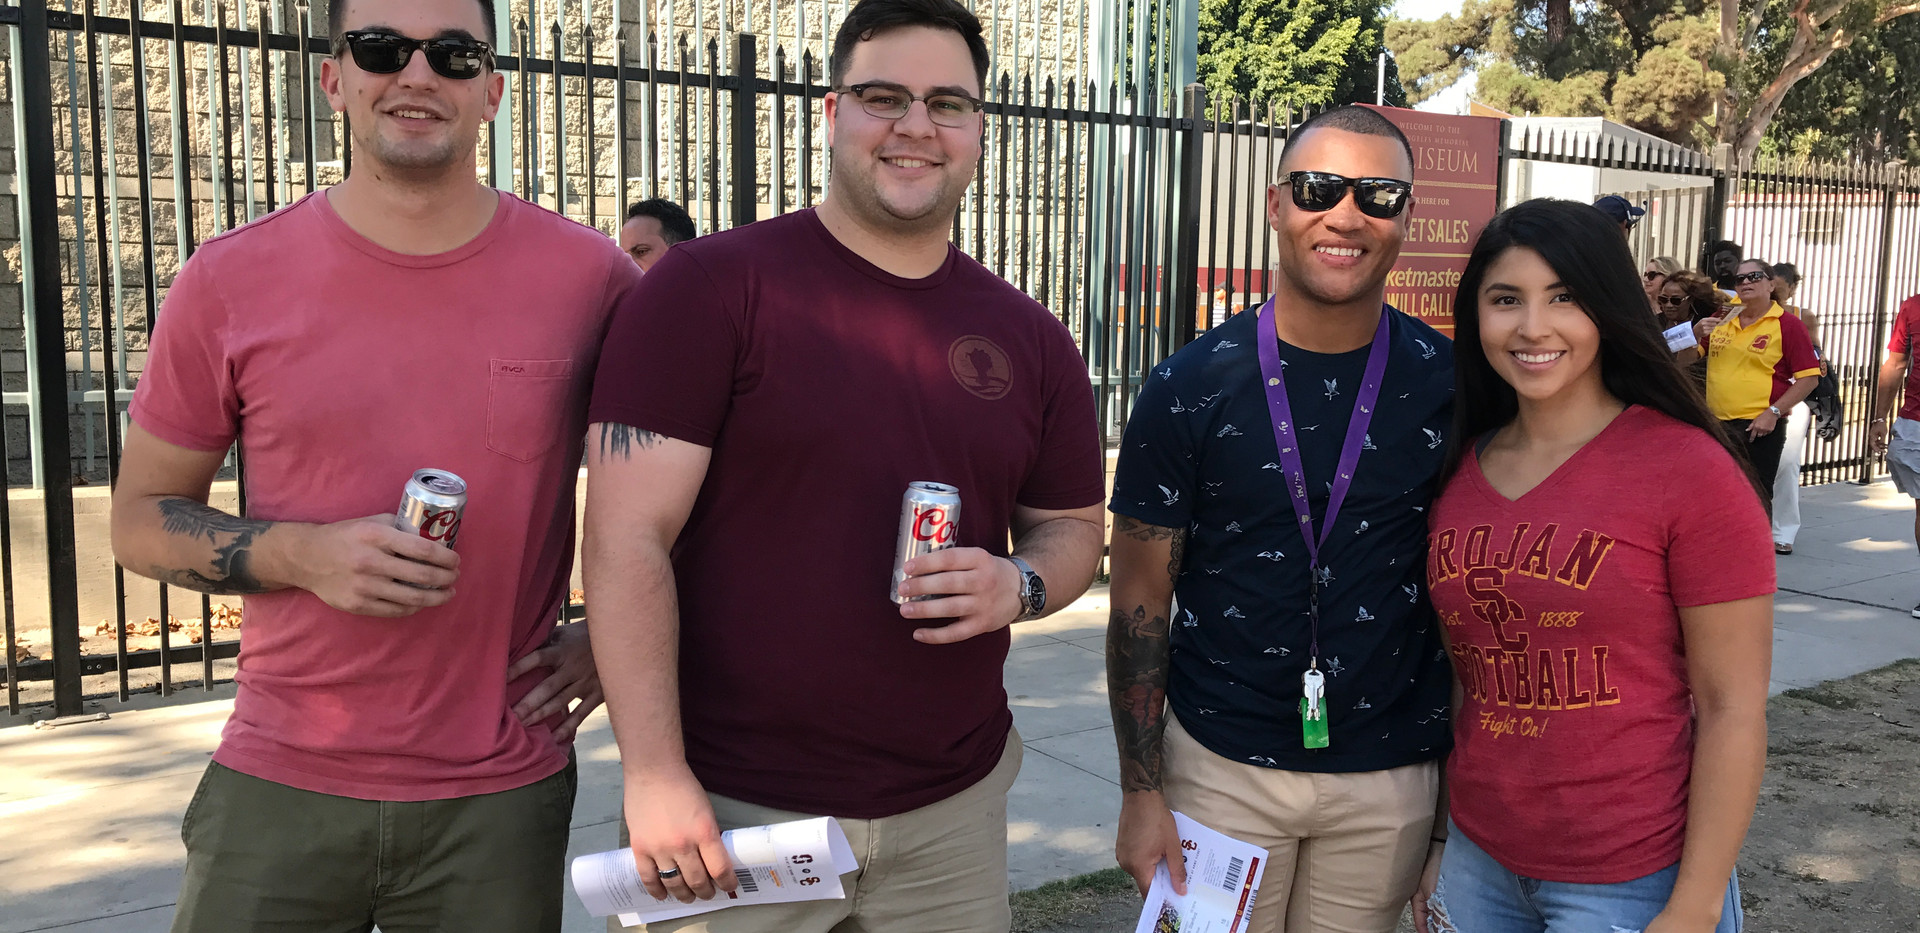 Some of our troops attending a USC game.